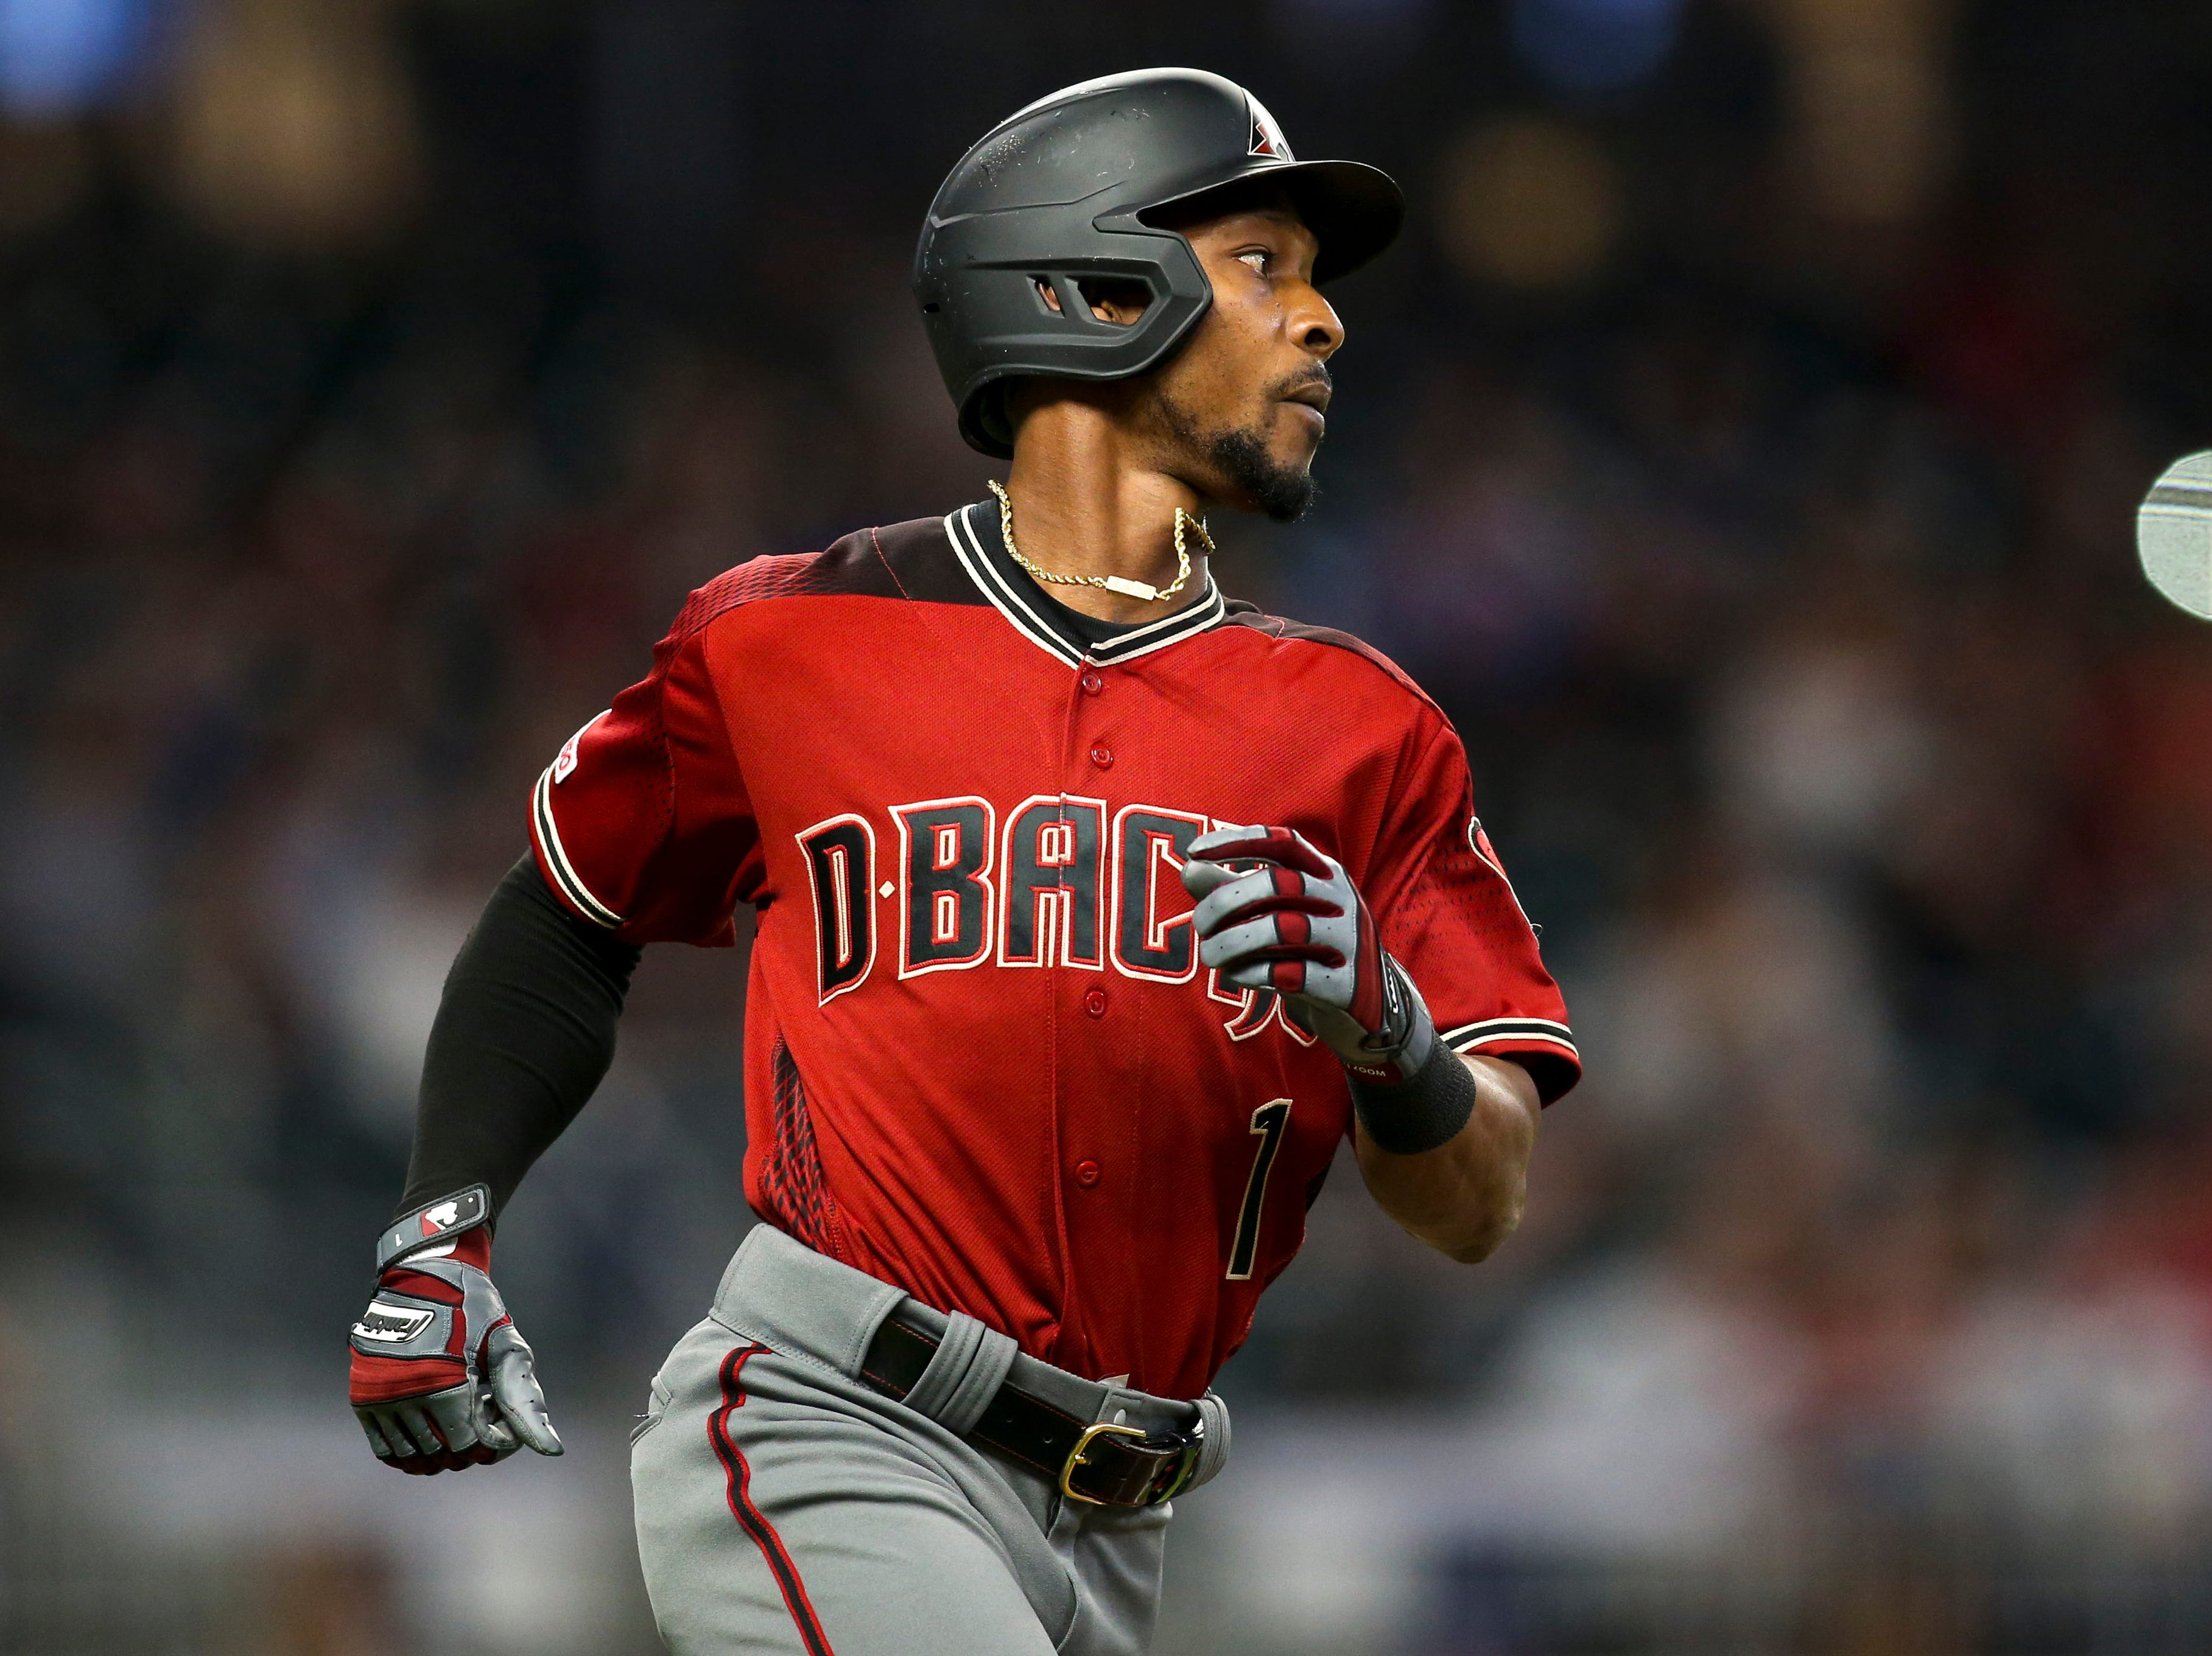 Apr 17, 2019; Atlanta, GA, USA; Arizona Diamondbacks center fielder Jarrod Dyson (1) hits a single against the Atlanta Braves in the eighth inning at SunTrust Park. Mandatory Credit: Brett Davis-USA TODAY Sports